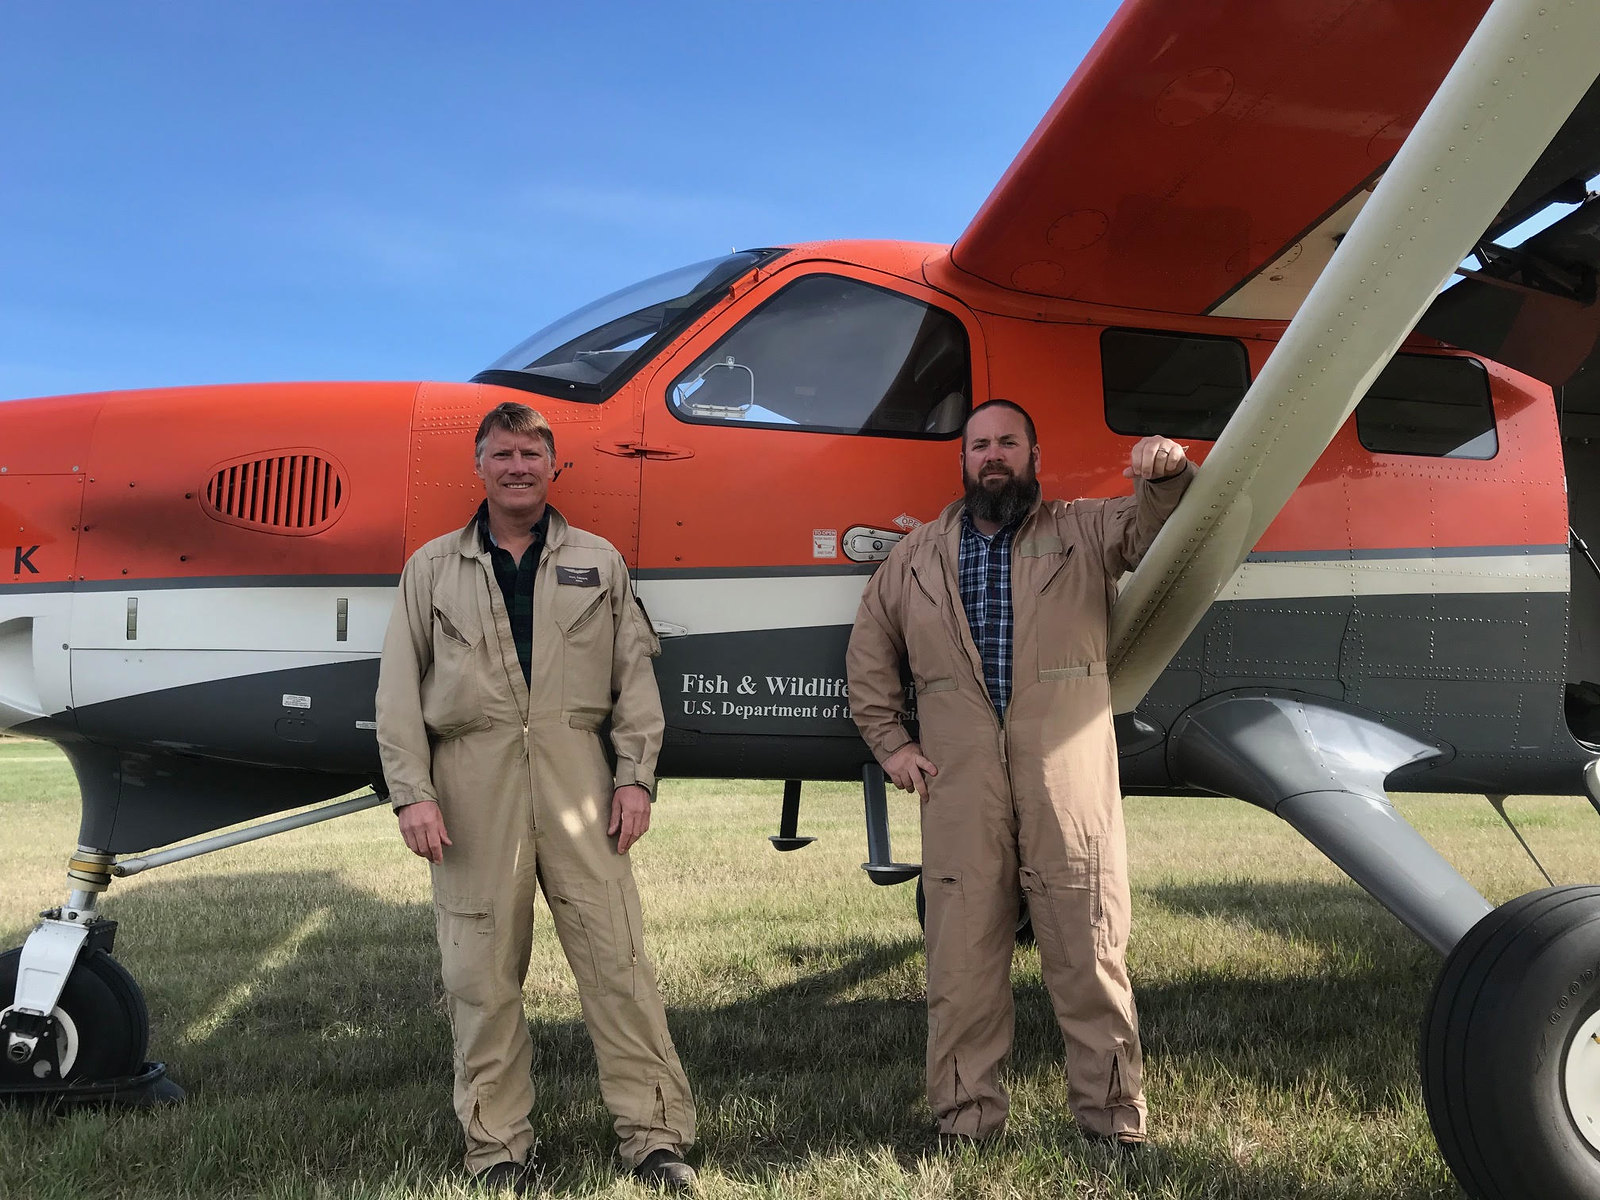 Thorpe and Chandler surveying the southern Saskatchewan crew area, USFWS